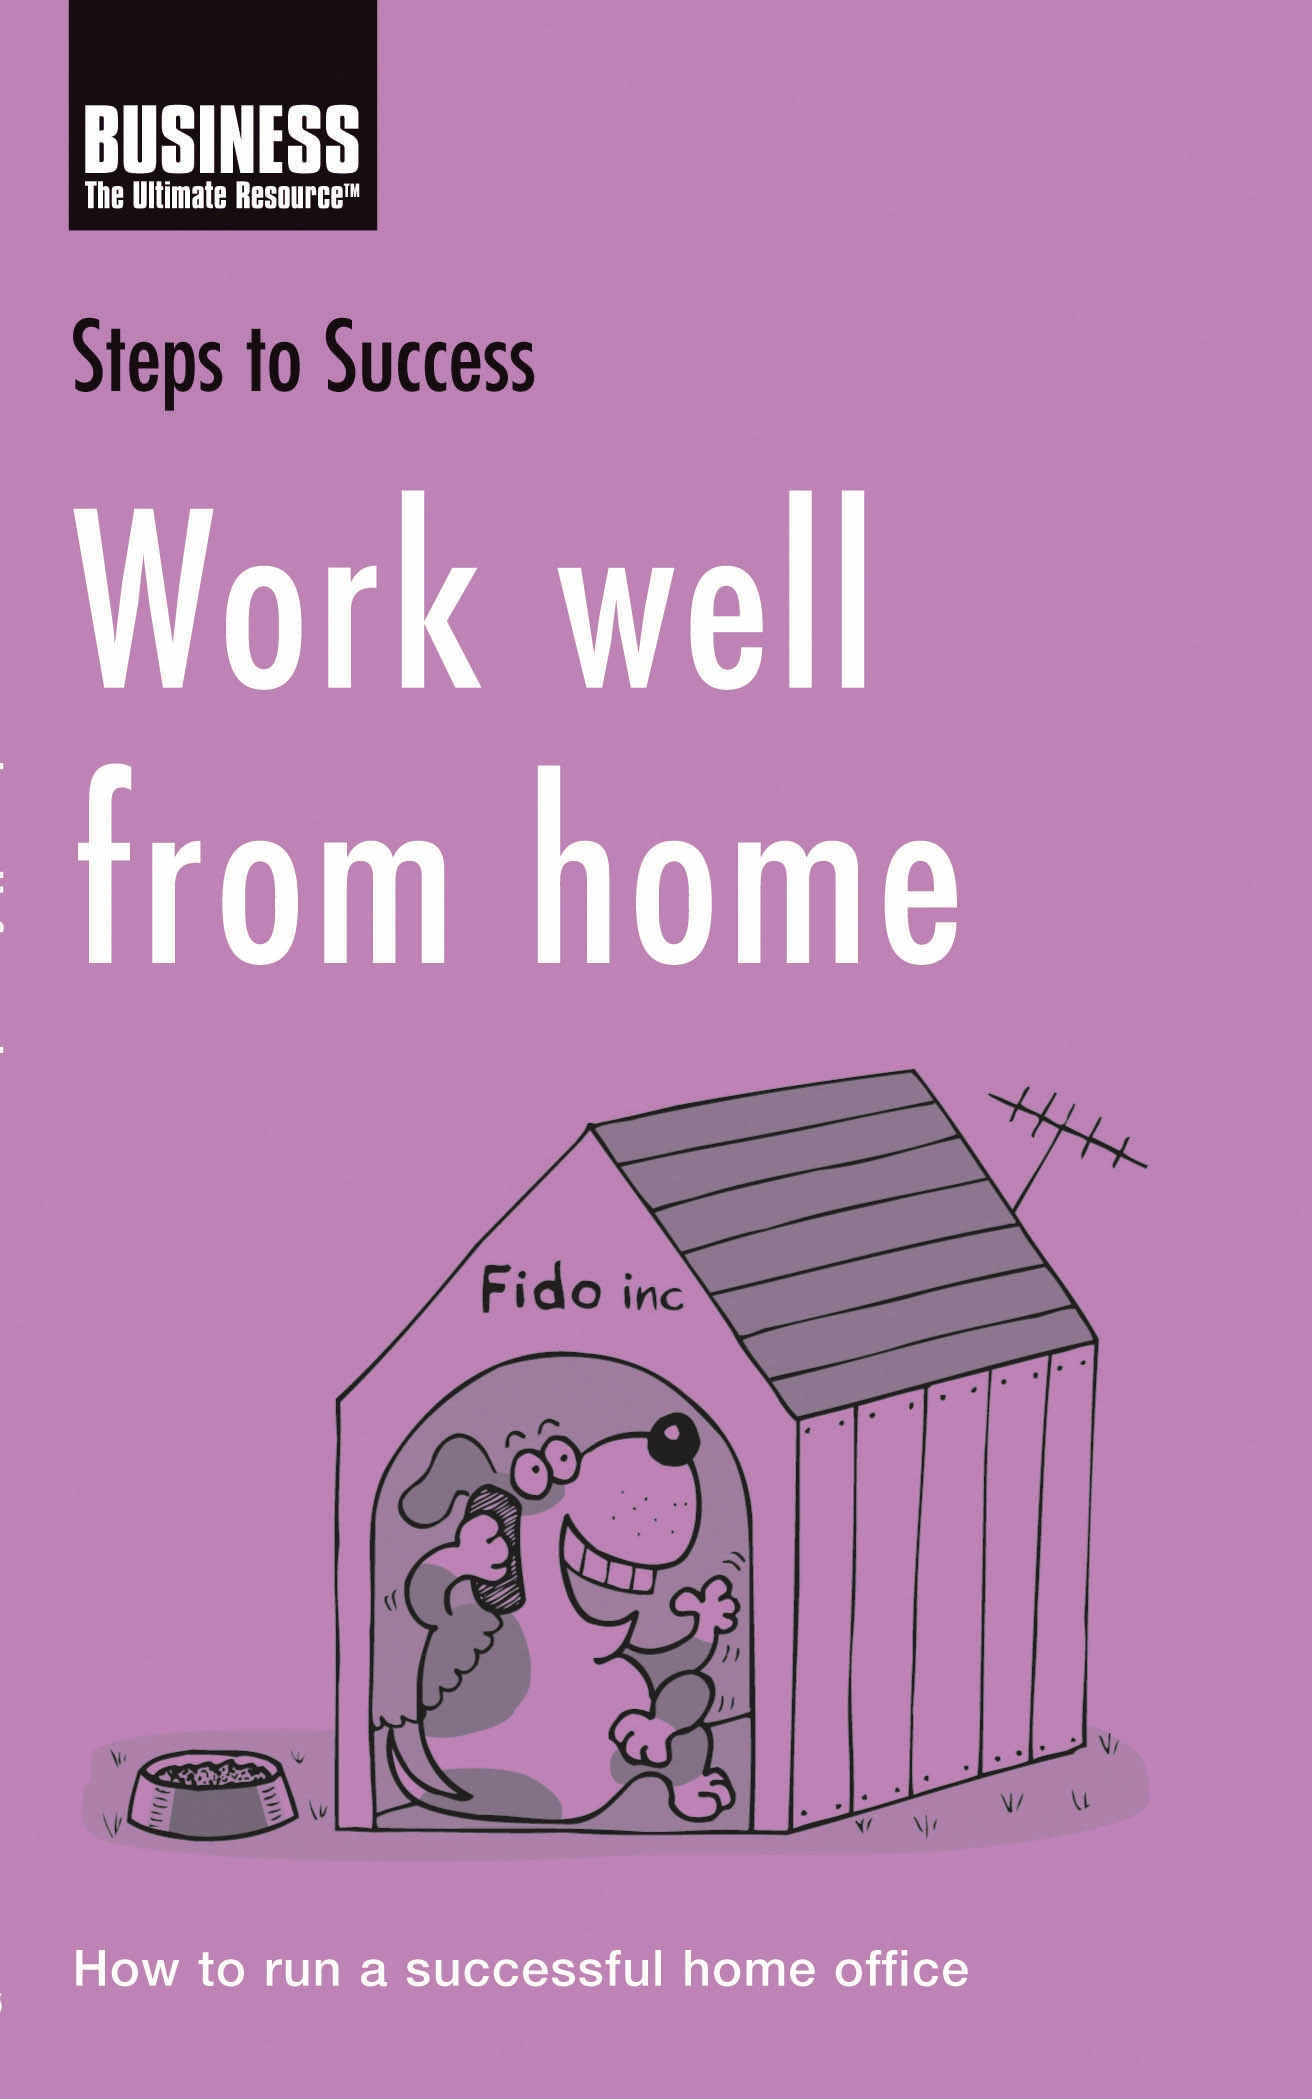 Work well from home How to run a successful home office